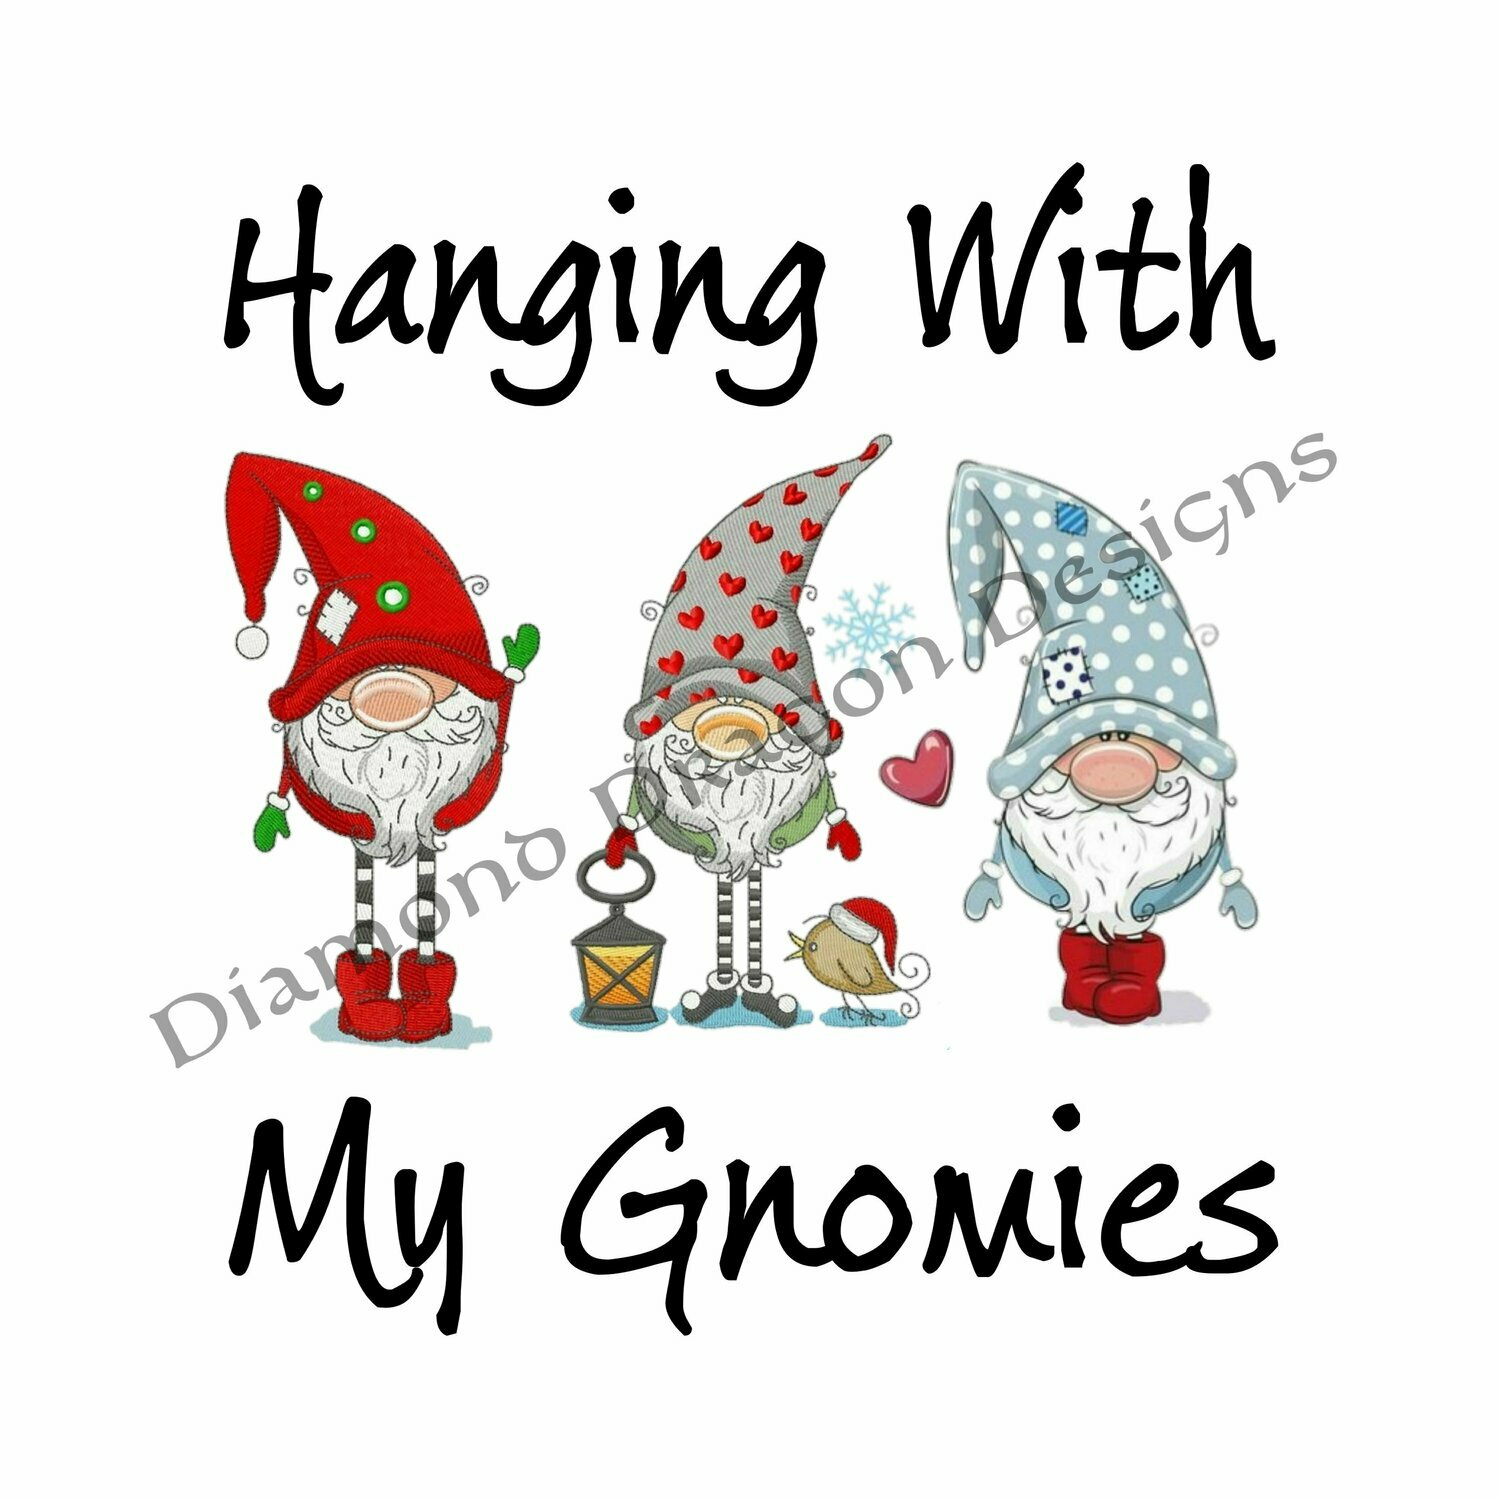 Gnomes - Christmas Gnomes, Hanging With My Gnomies, Best Friends, Quote, Friends, 3 Gnomes, Digital Image